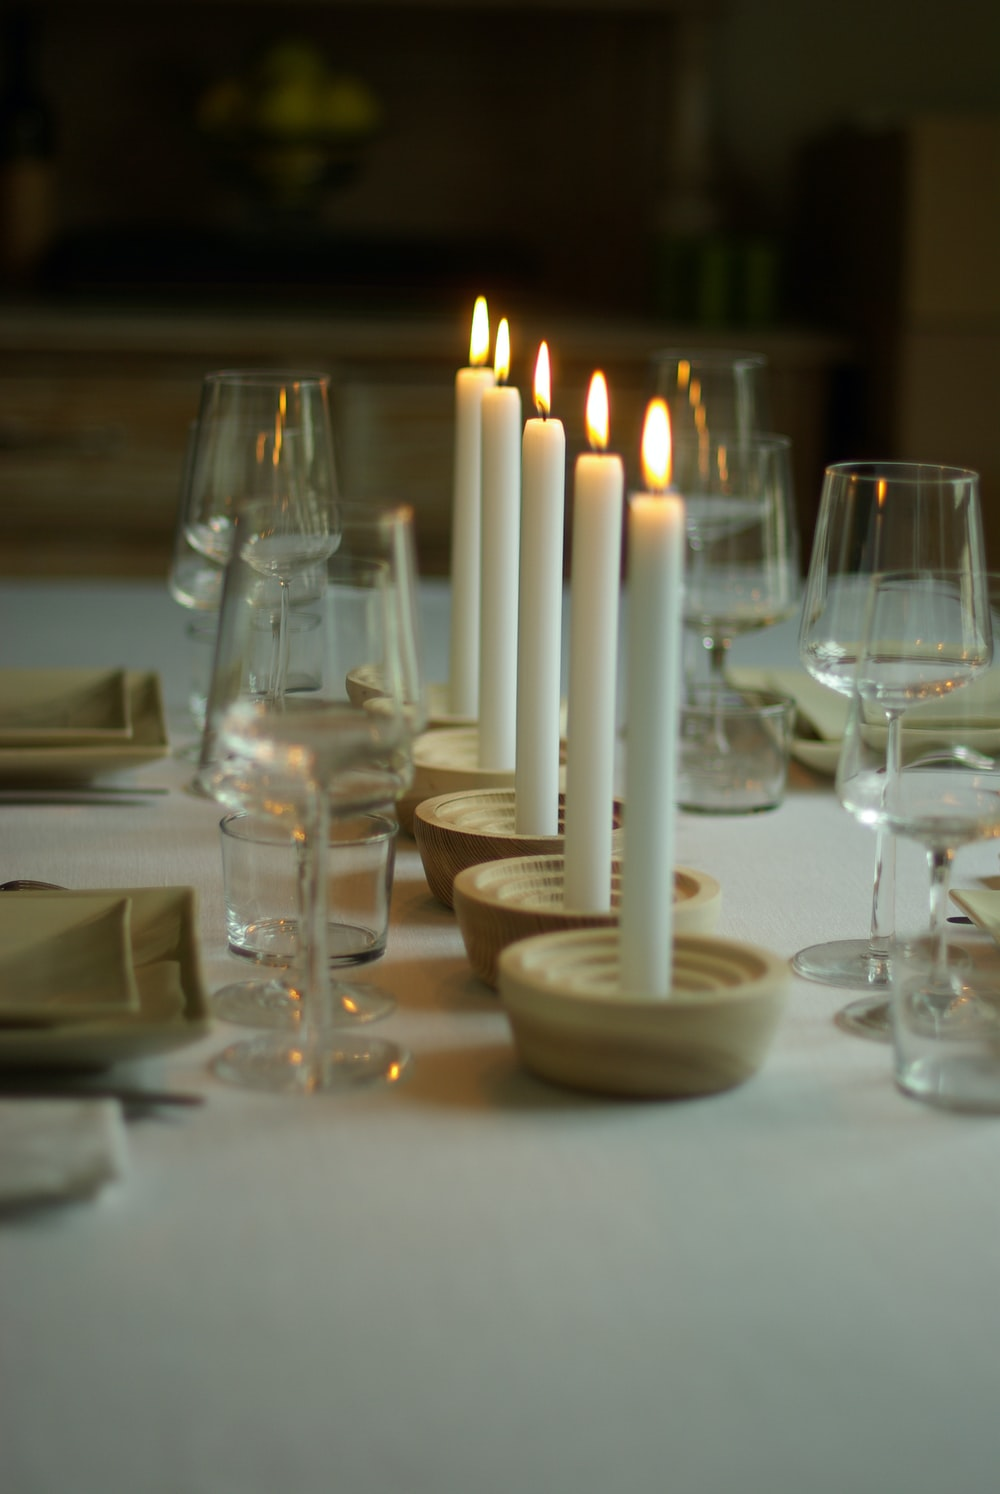 lighted five white candles on table with wine glasses